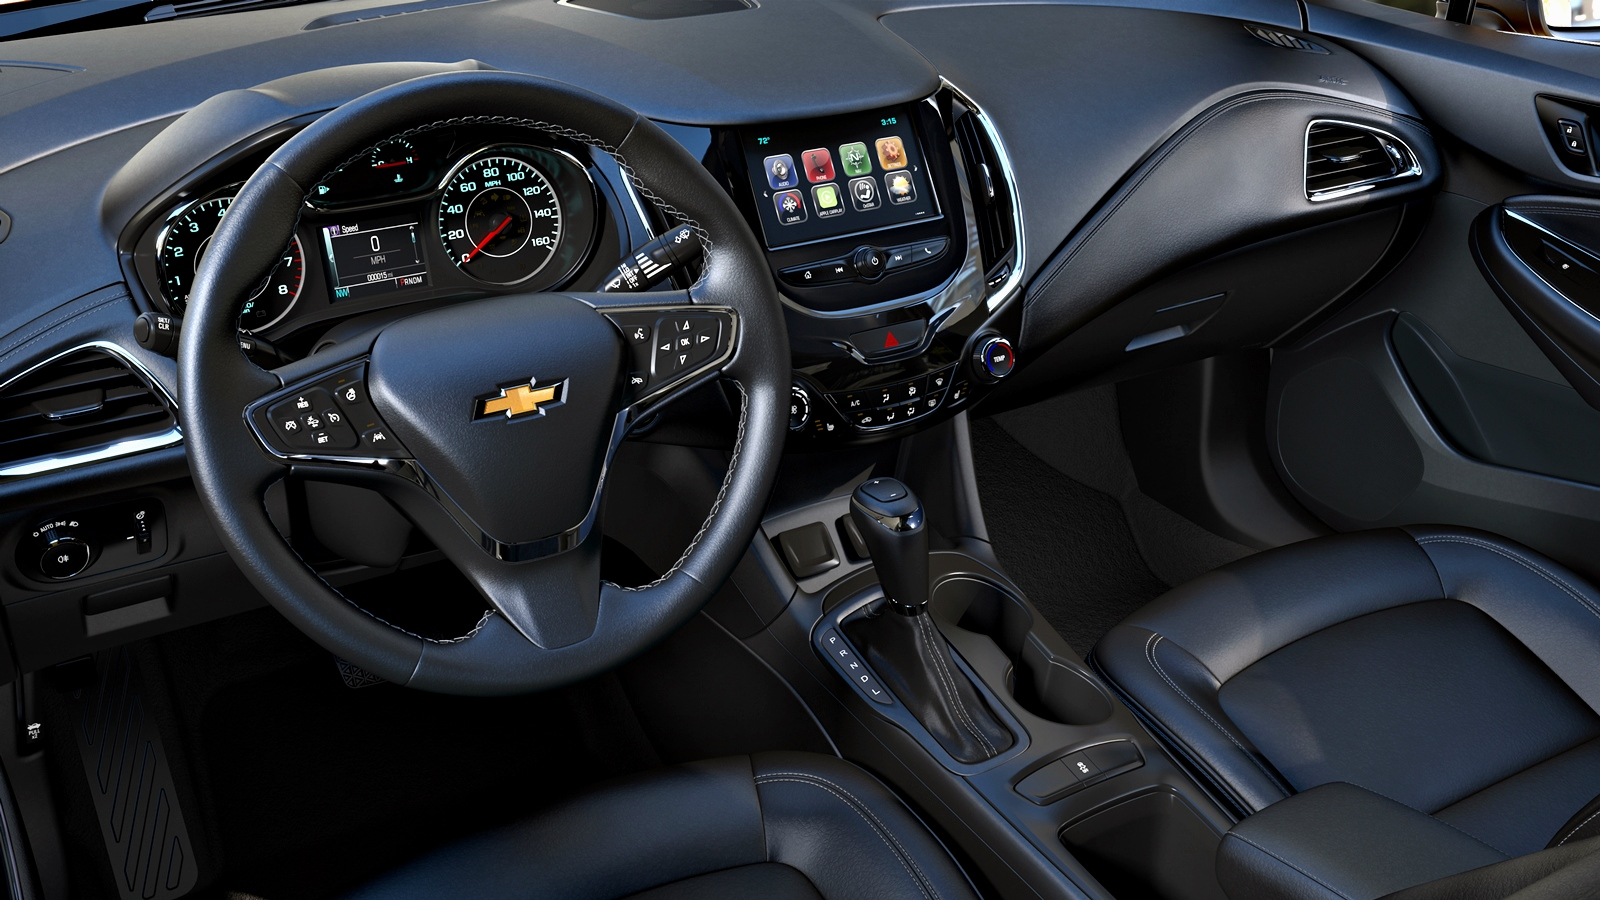 The 2017 Cruze Hatch offers unexpected segment-exclusive technol